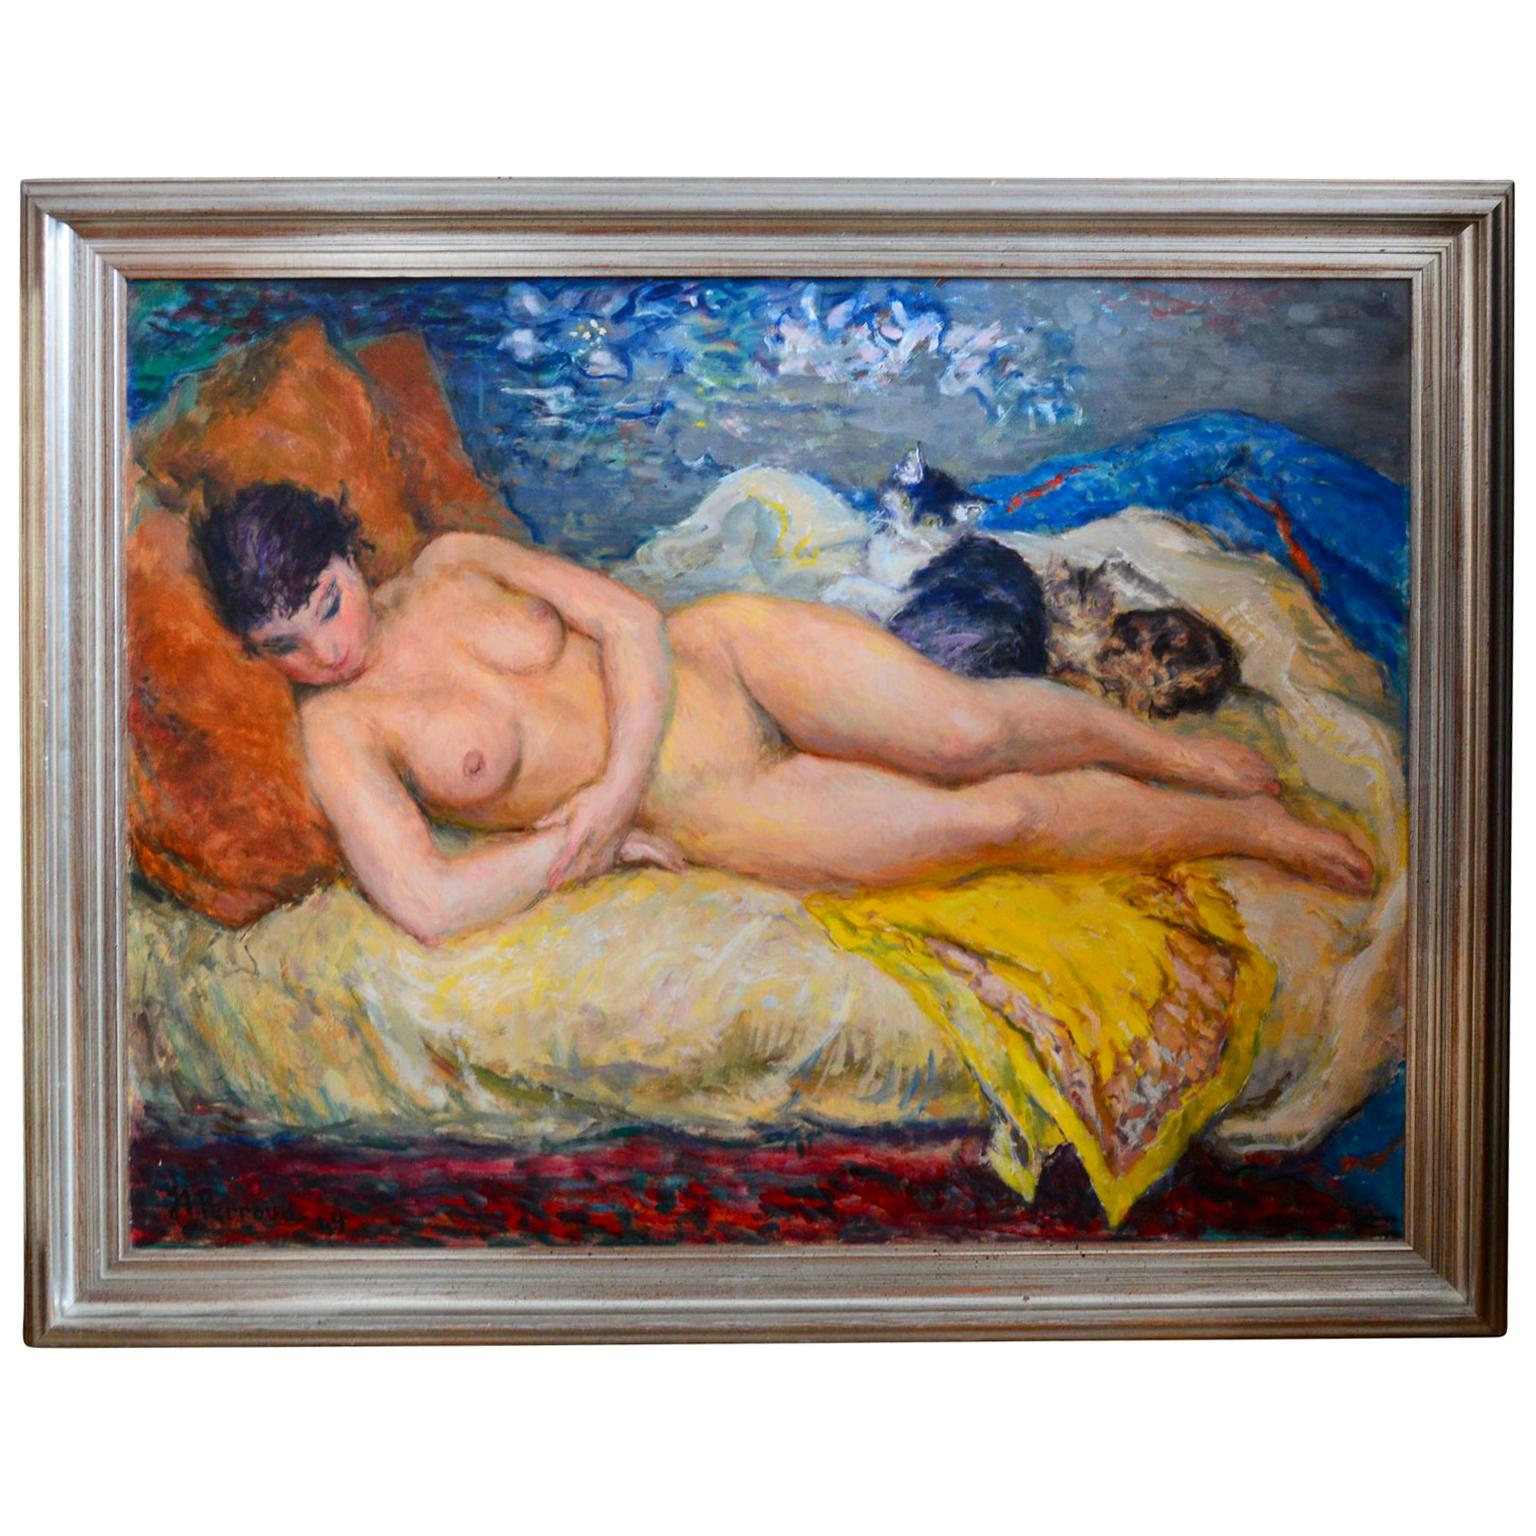 Jan Andre Perroud Nude Painting with Reverse Oil-Painting Of A Sailboat Scene